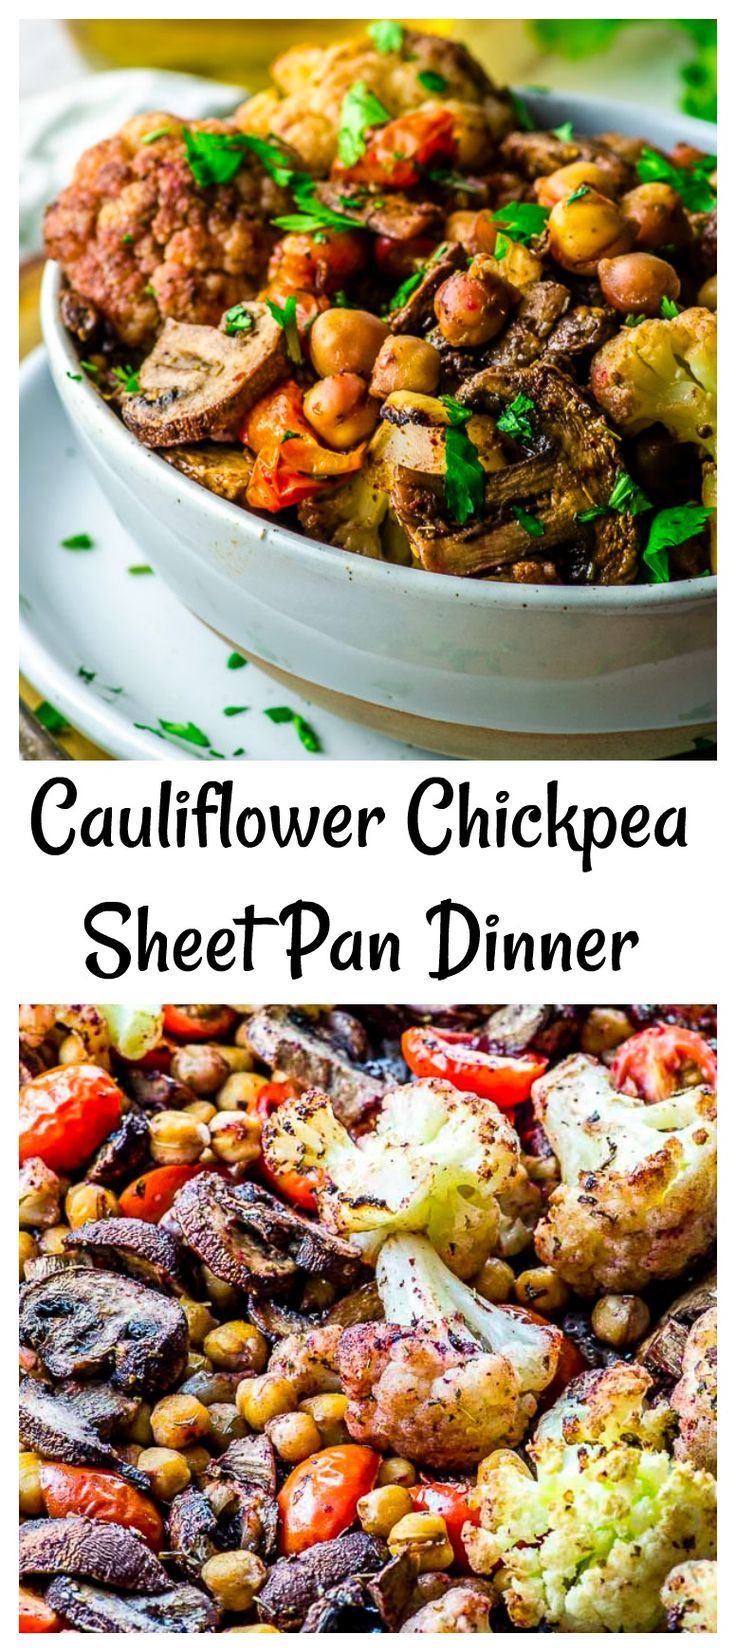 Cauliflower Chickpea Sheet Pan Dinner